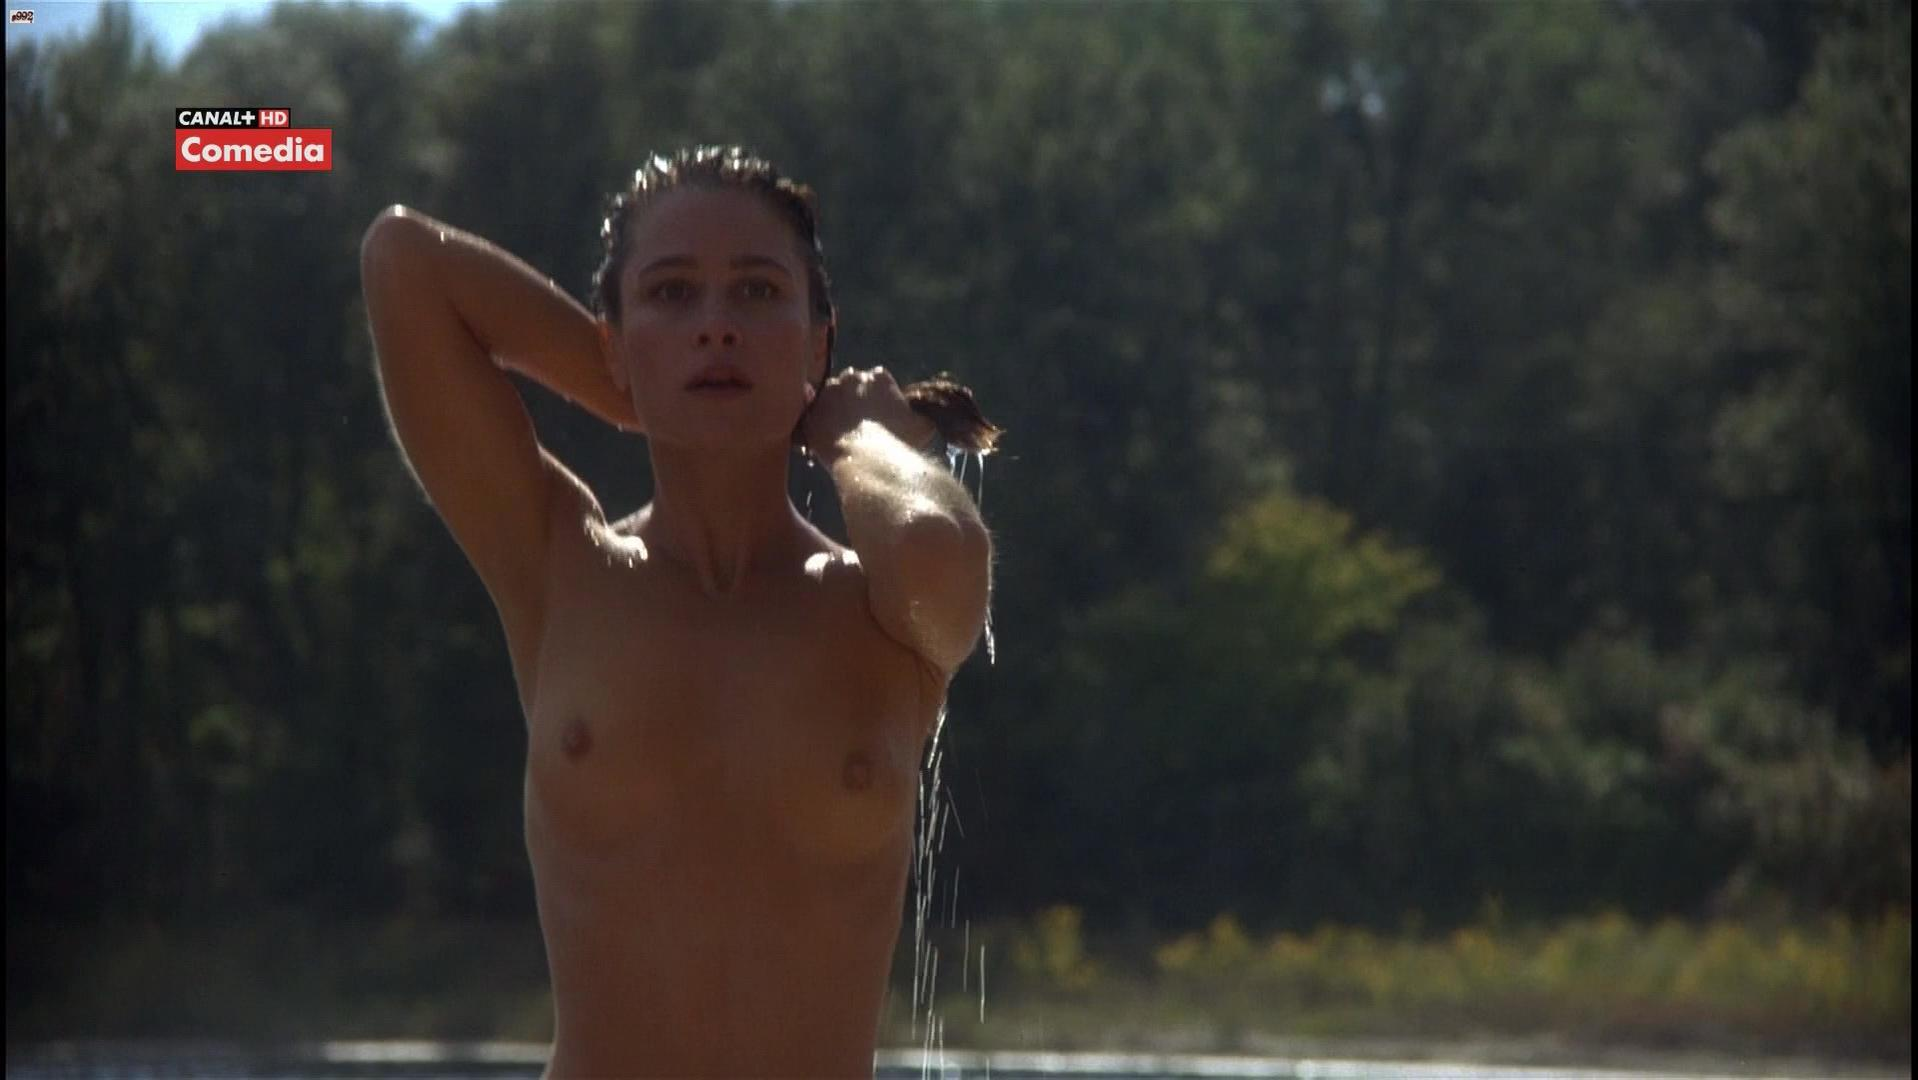 julie warner actress nude